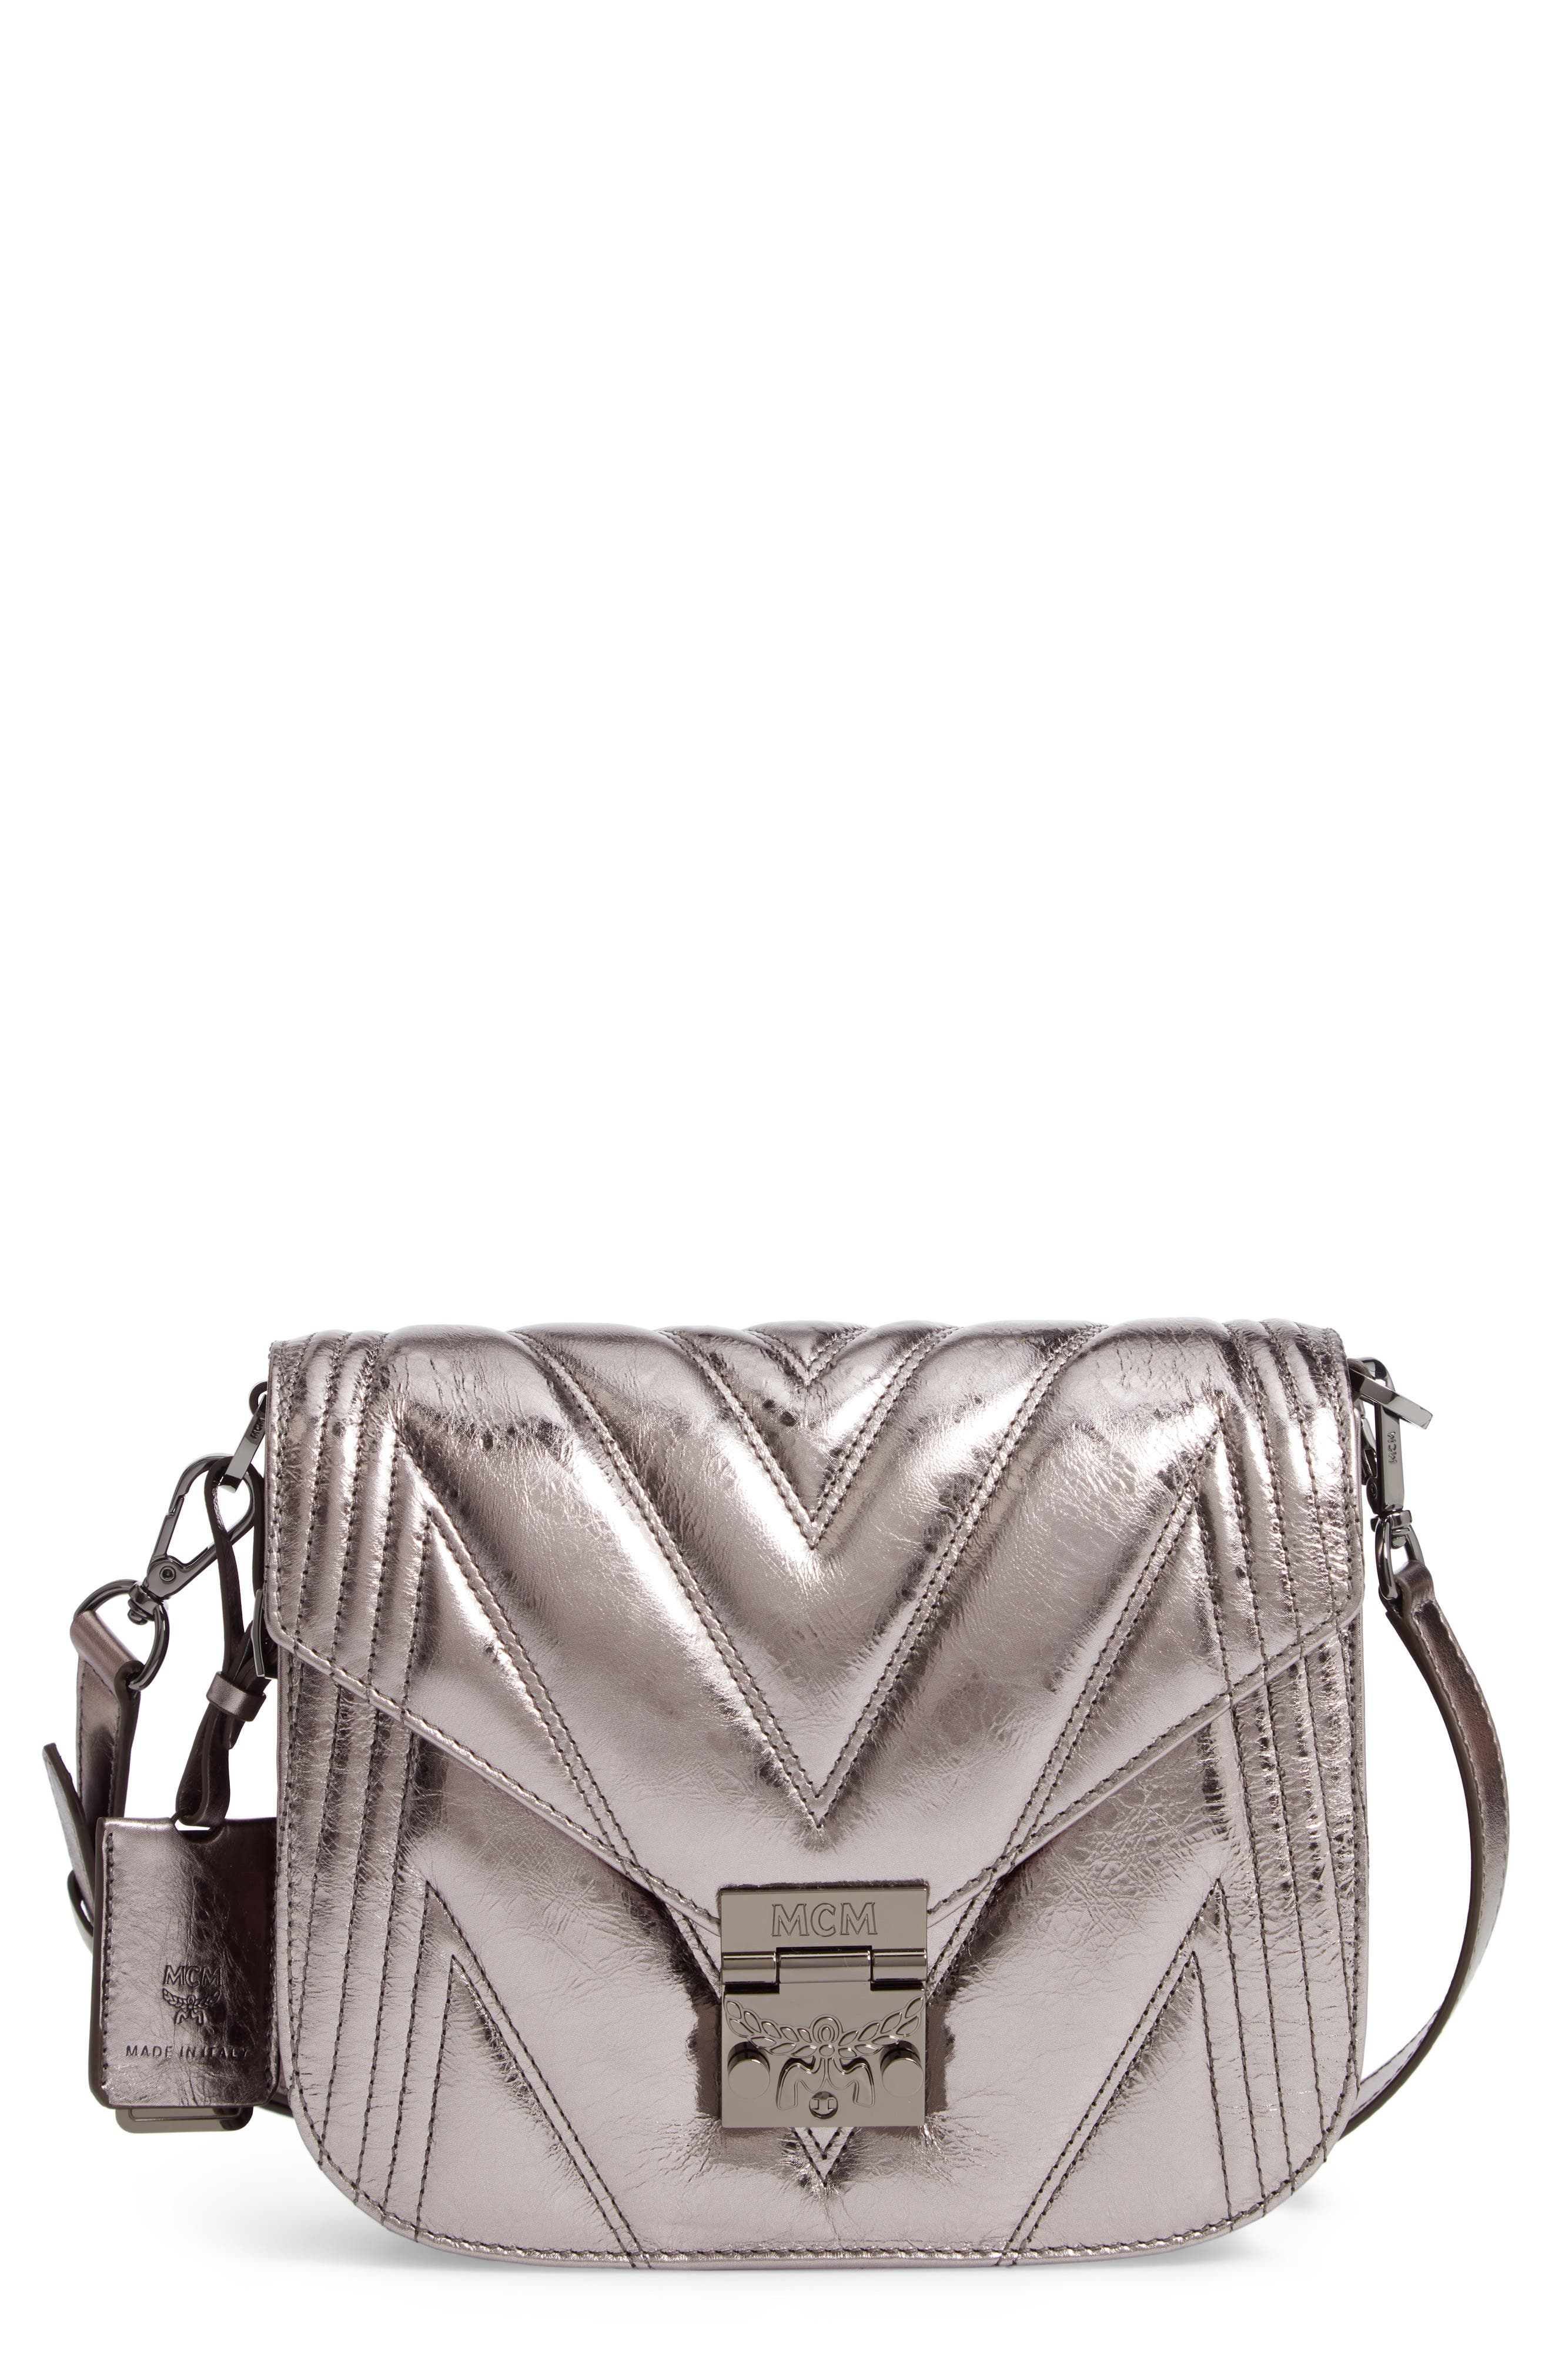 Patricia Quilted Metallic Leather Saddle Bag,                         Main,                         color, BERLIN SILVER